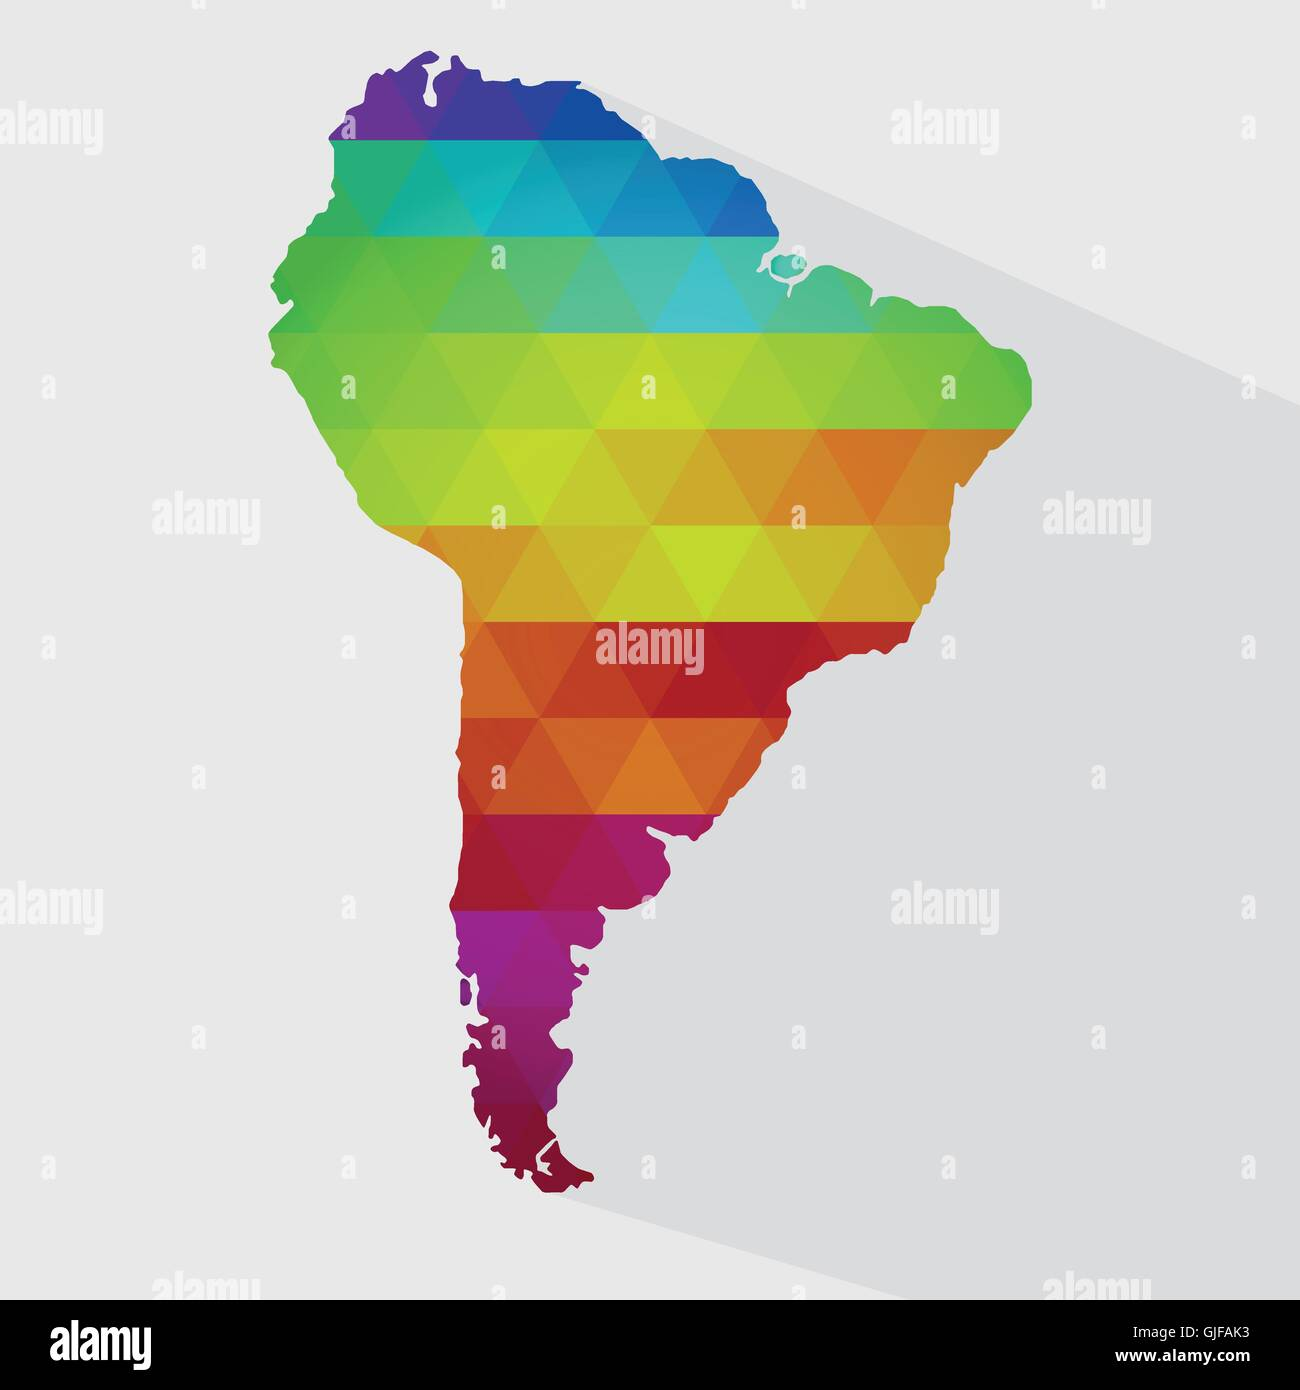 map of south america with colored geometric shapes triangles forming the colors of the